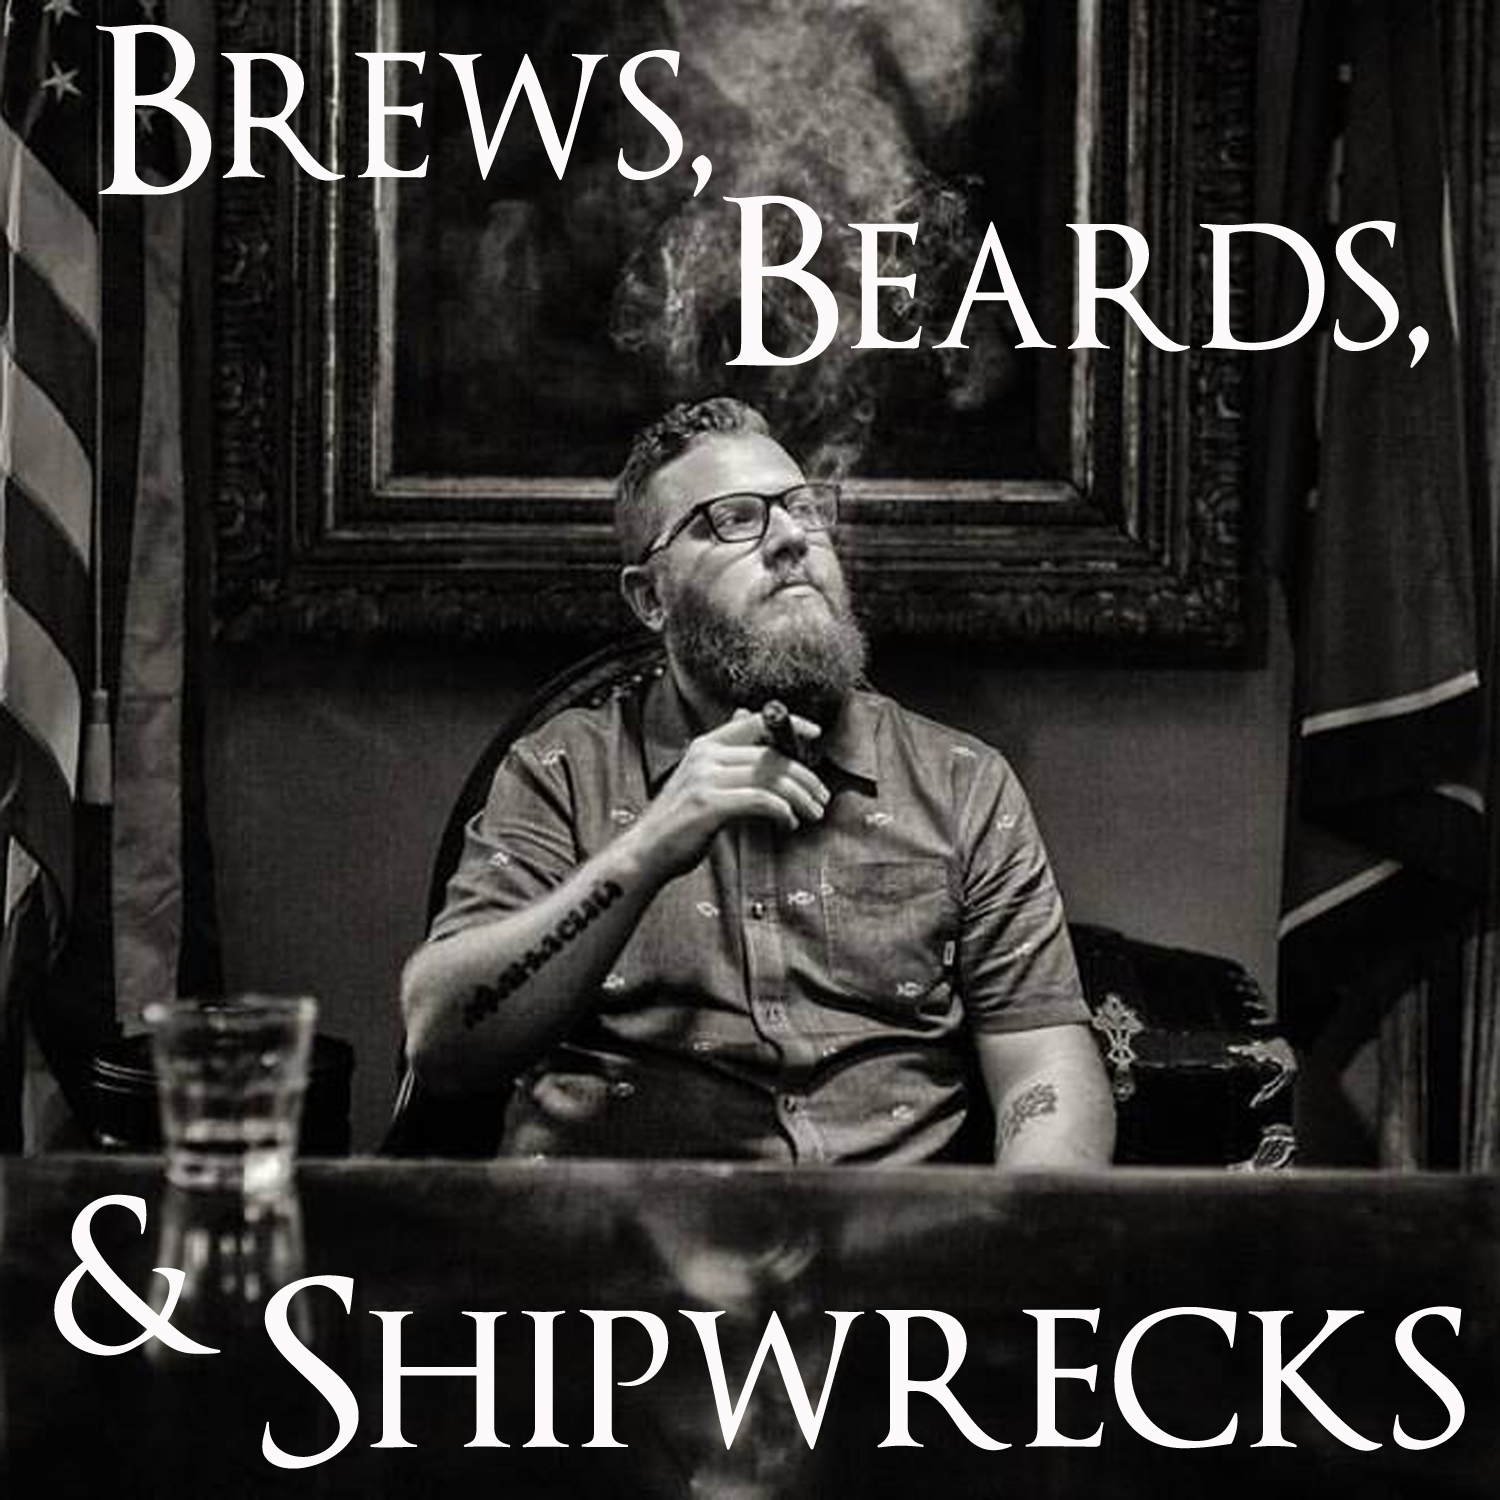 Brews, Beards, & Shipwrecks